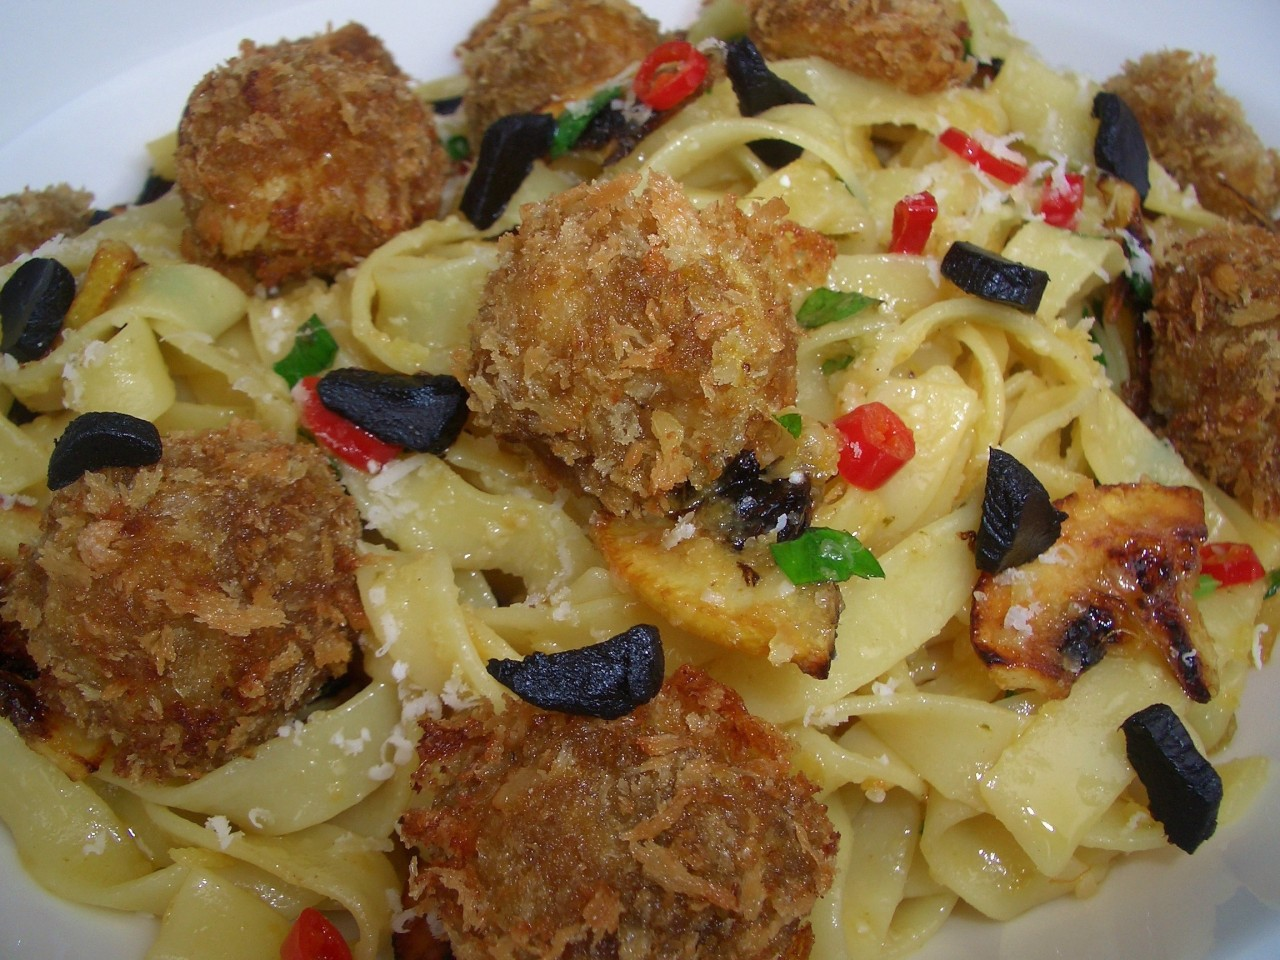 Fettuccine con Limón Frito, Pollo y Chile – Fettucchine with Fried Lemon, Chicken and Chile Flakes